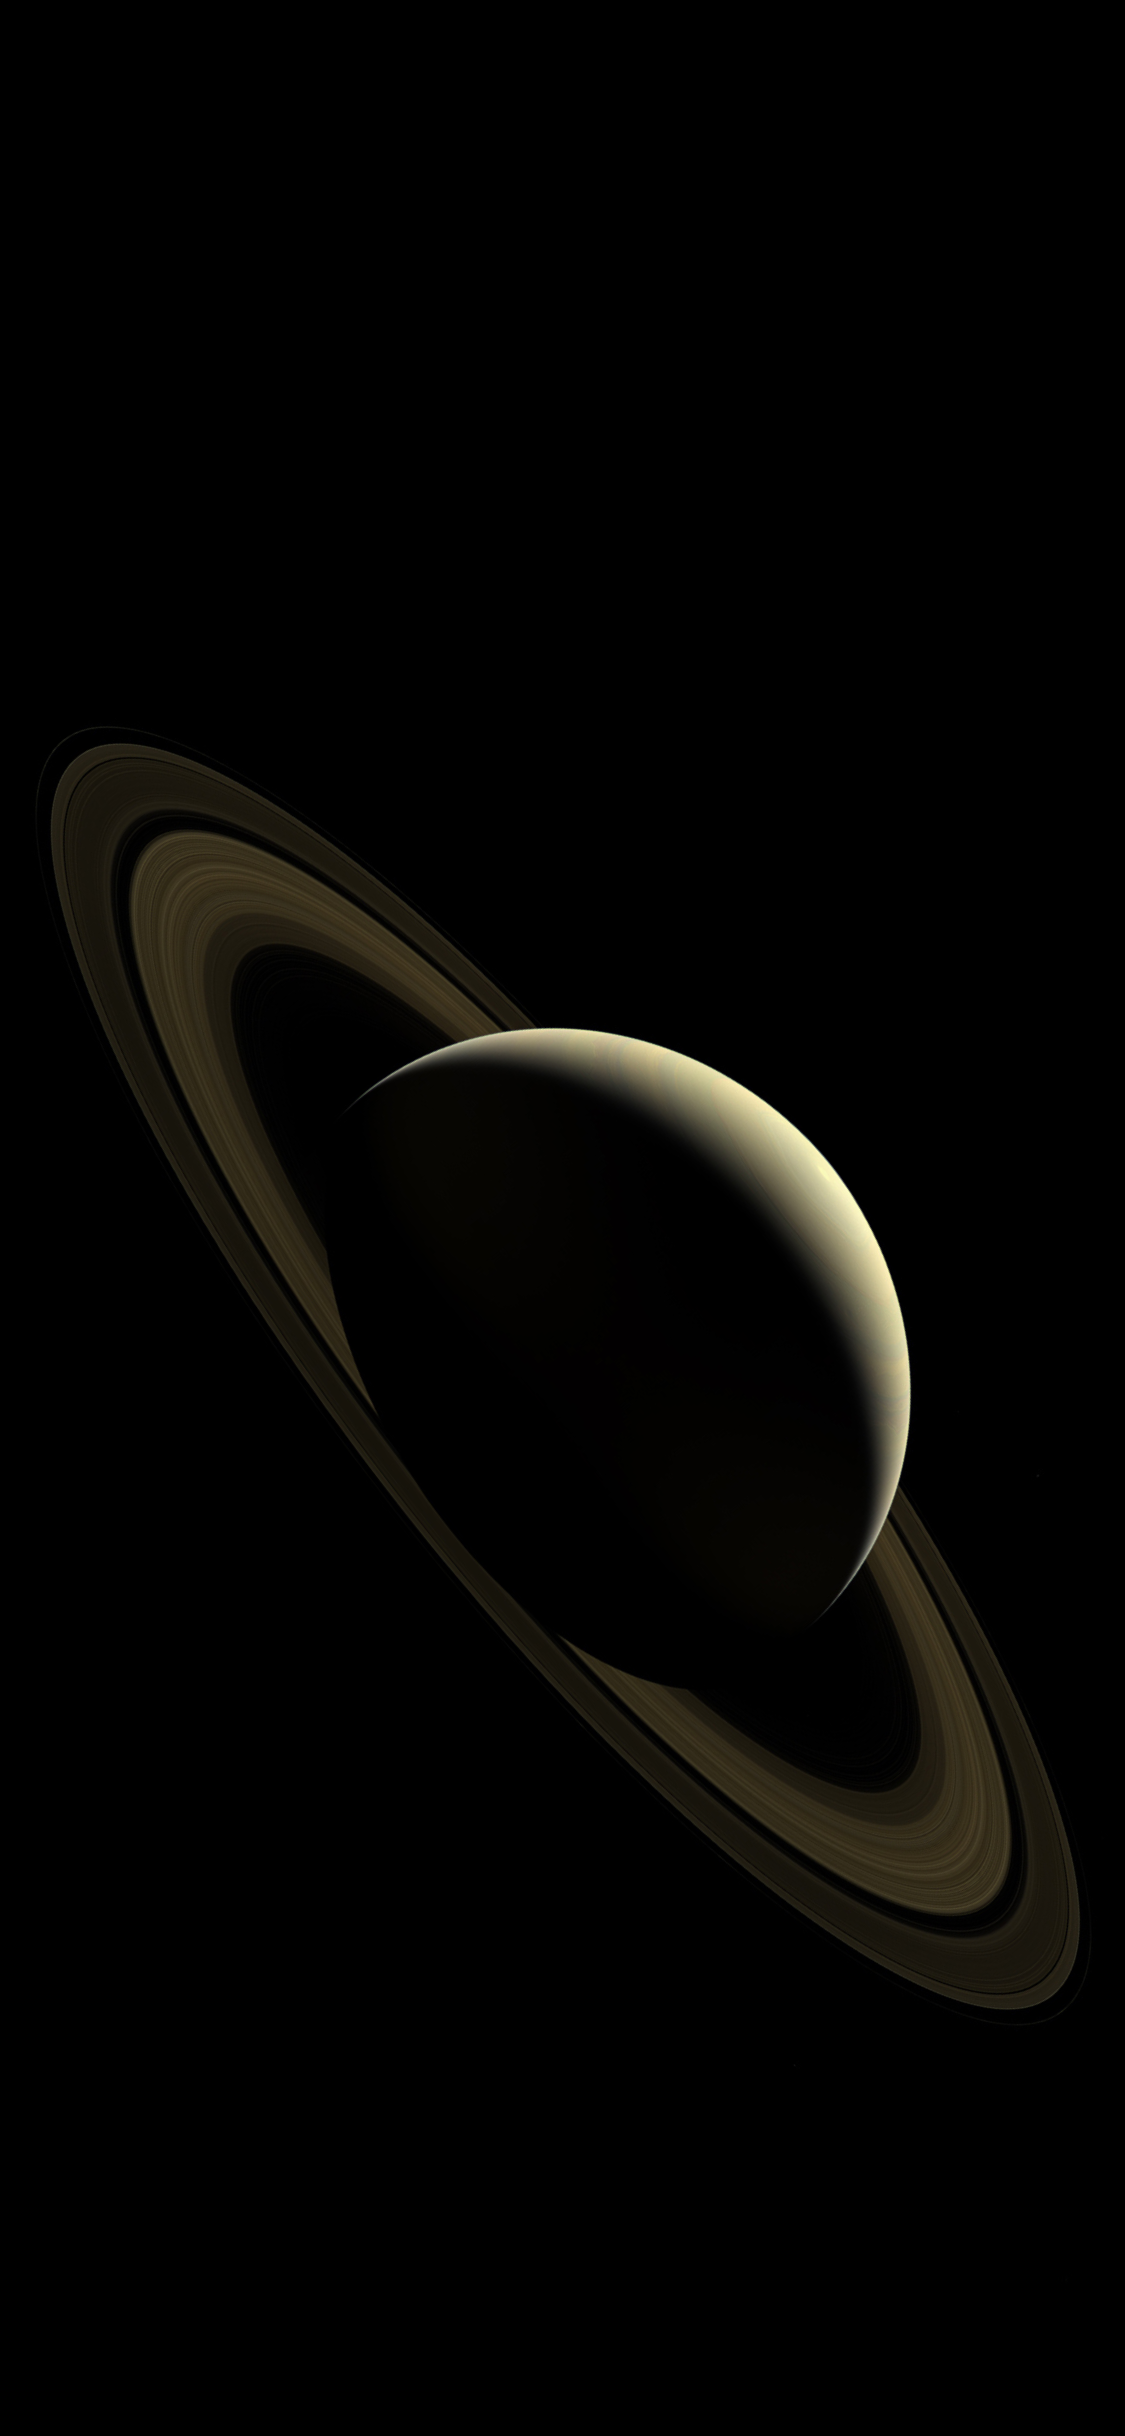 1125x2436 - Saturn Wallpapers 9